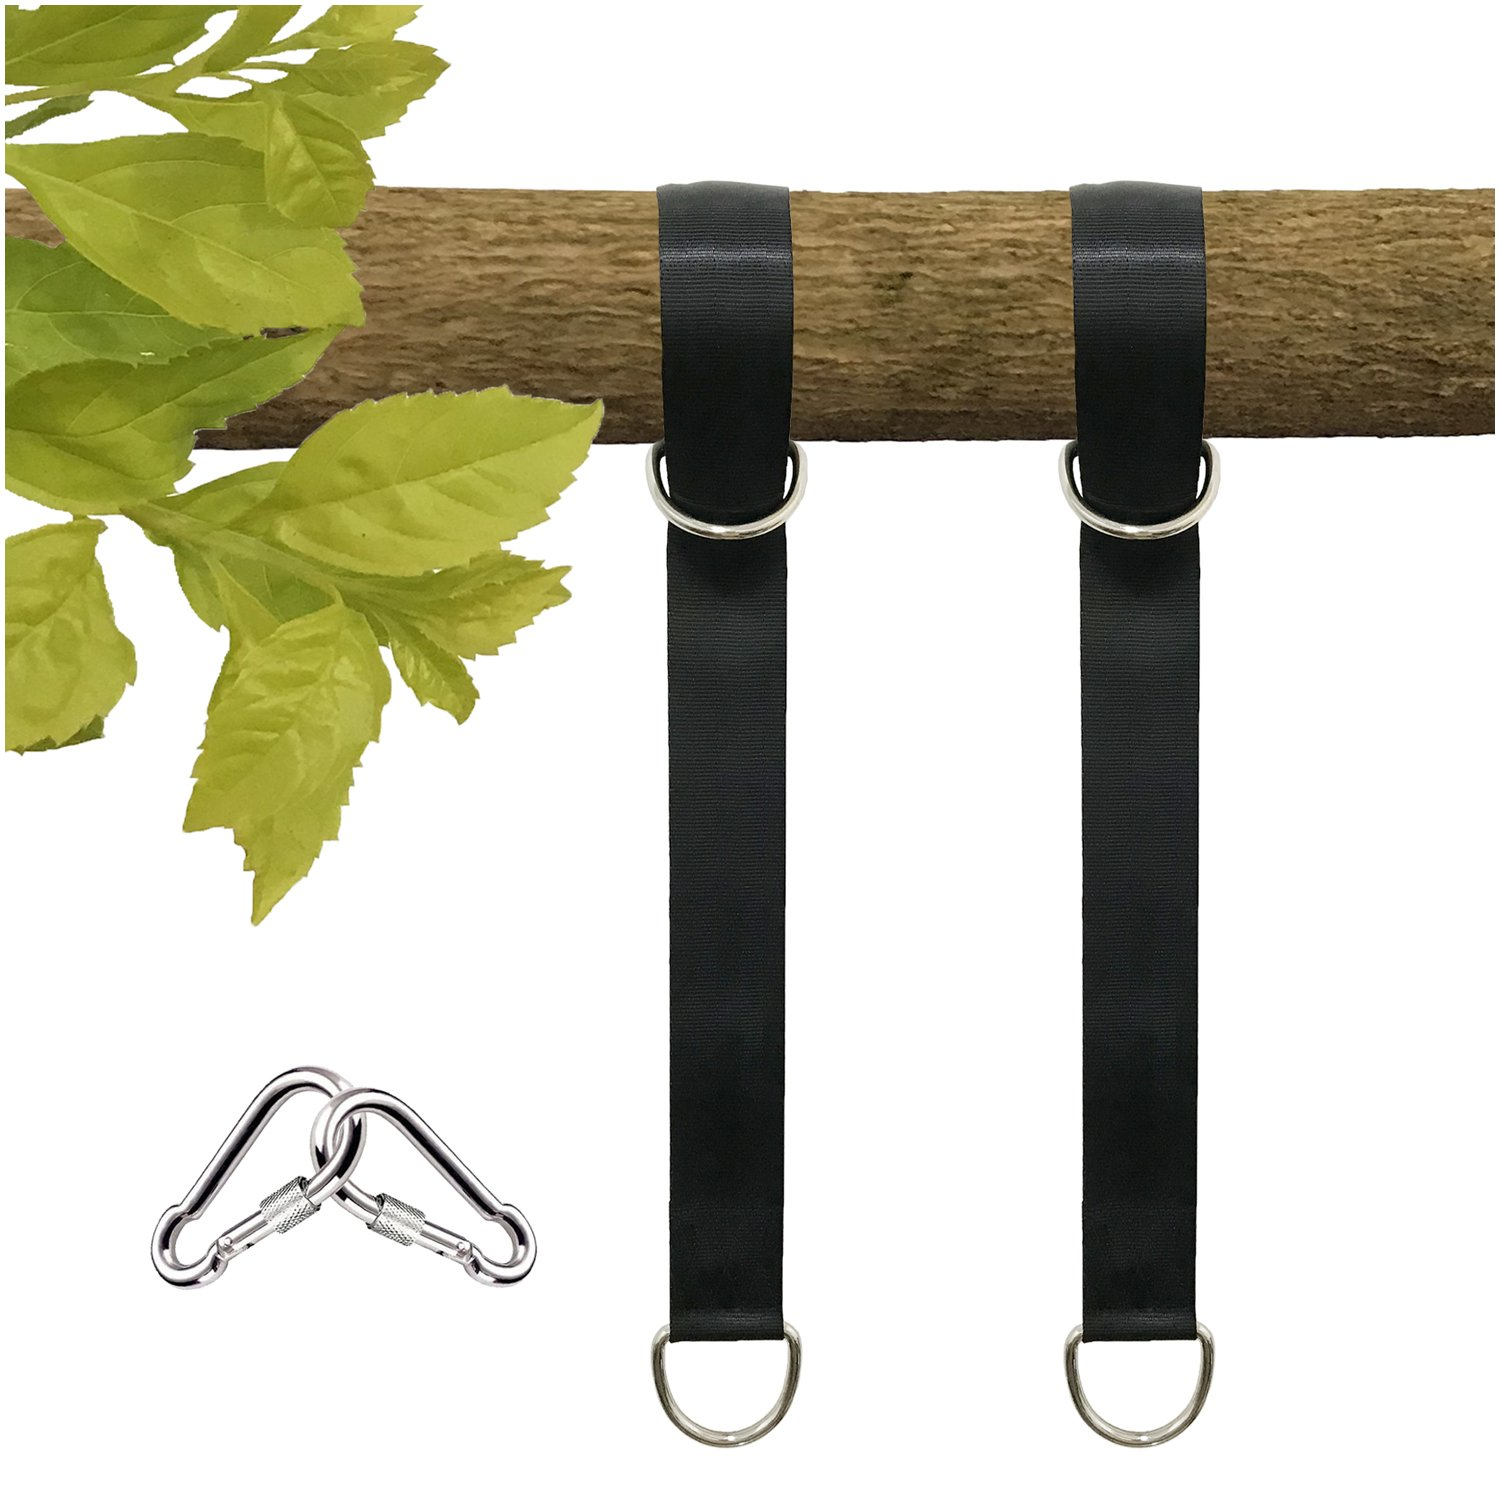 Tree Swing Straps Hanging Kit, 4FT, Holds 2600 lbs, 2 Heavy Duty Carabiners Included, Outdoor Swing Hangers-Perfect for Hammocks, Tire and Saucer Swings with Easy Installation